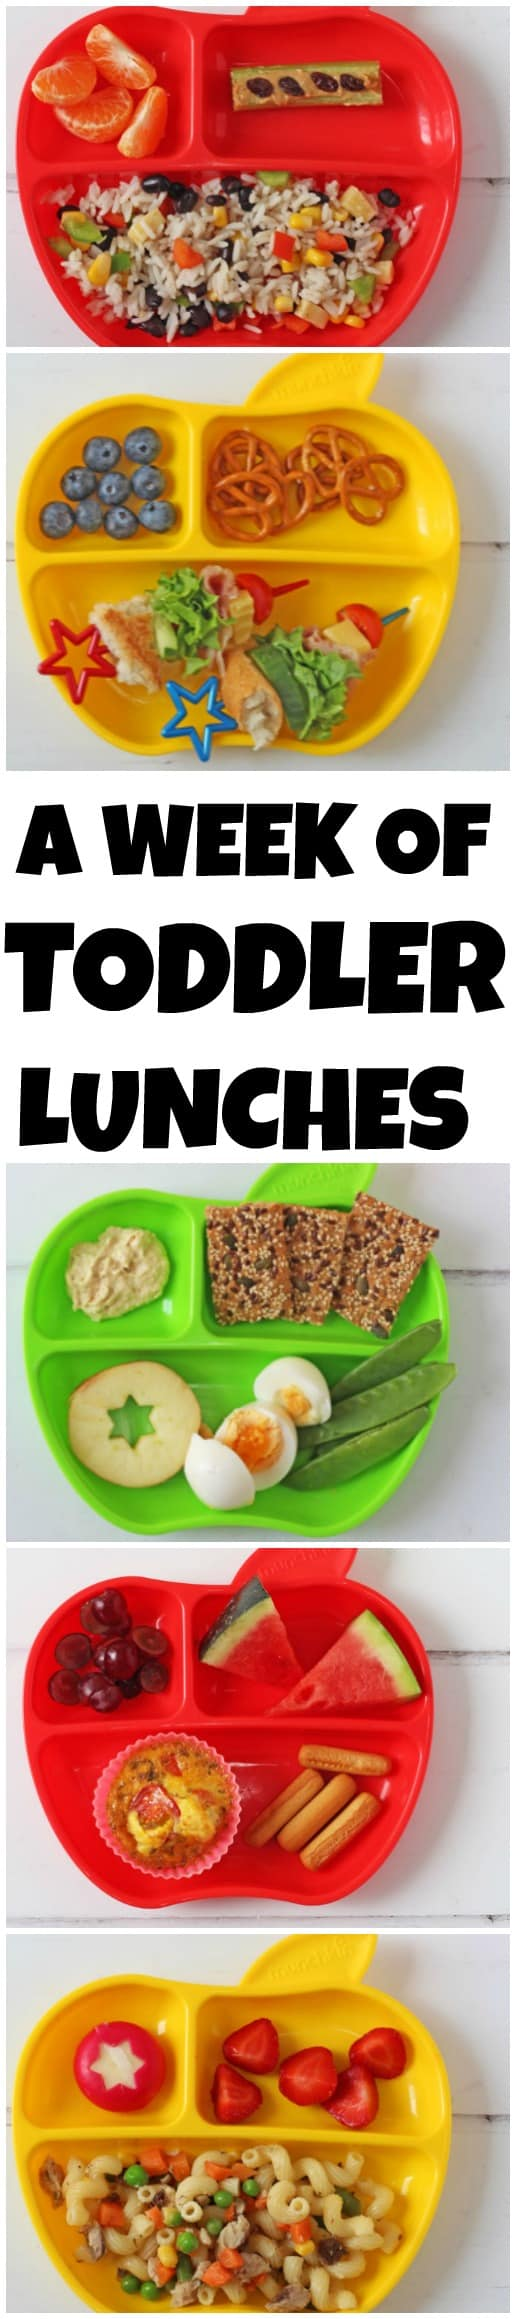 Seven quick, easy and healthy lunch ideas you can feed your toddler this week!